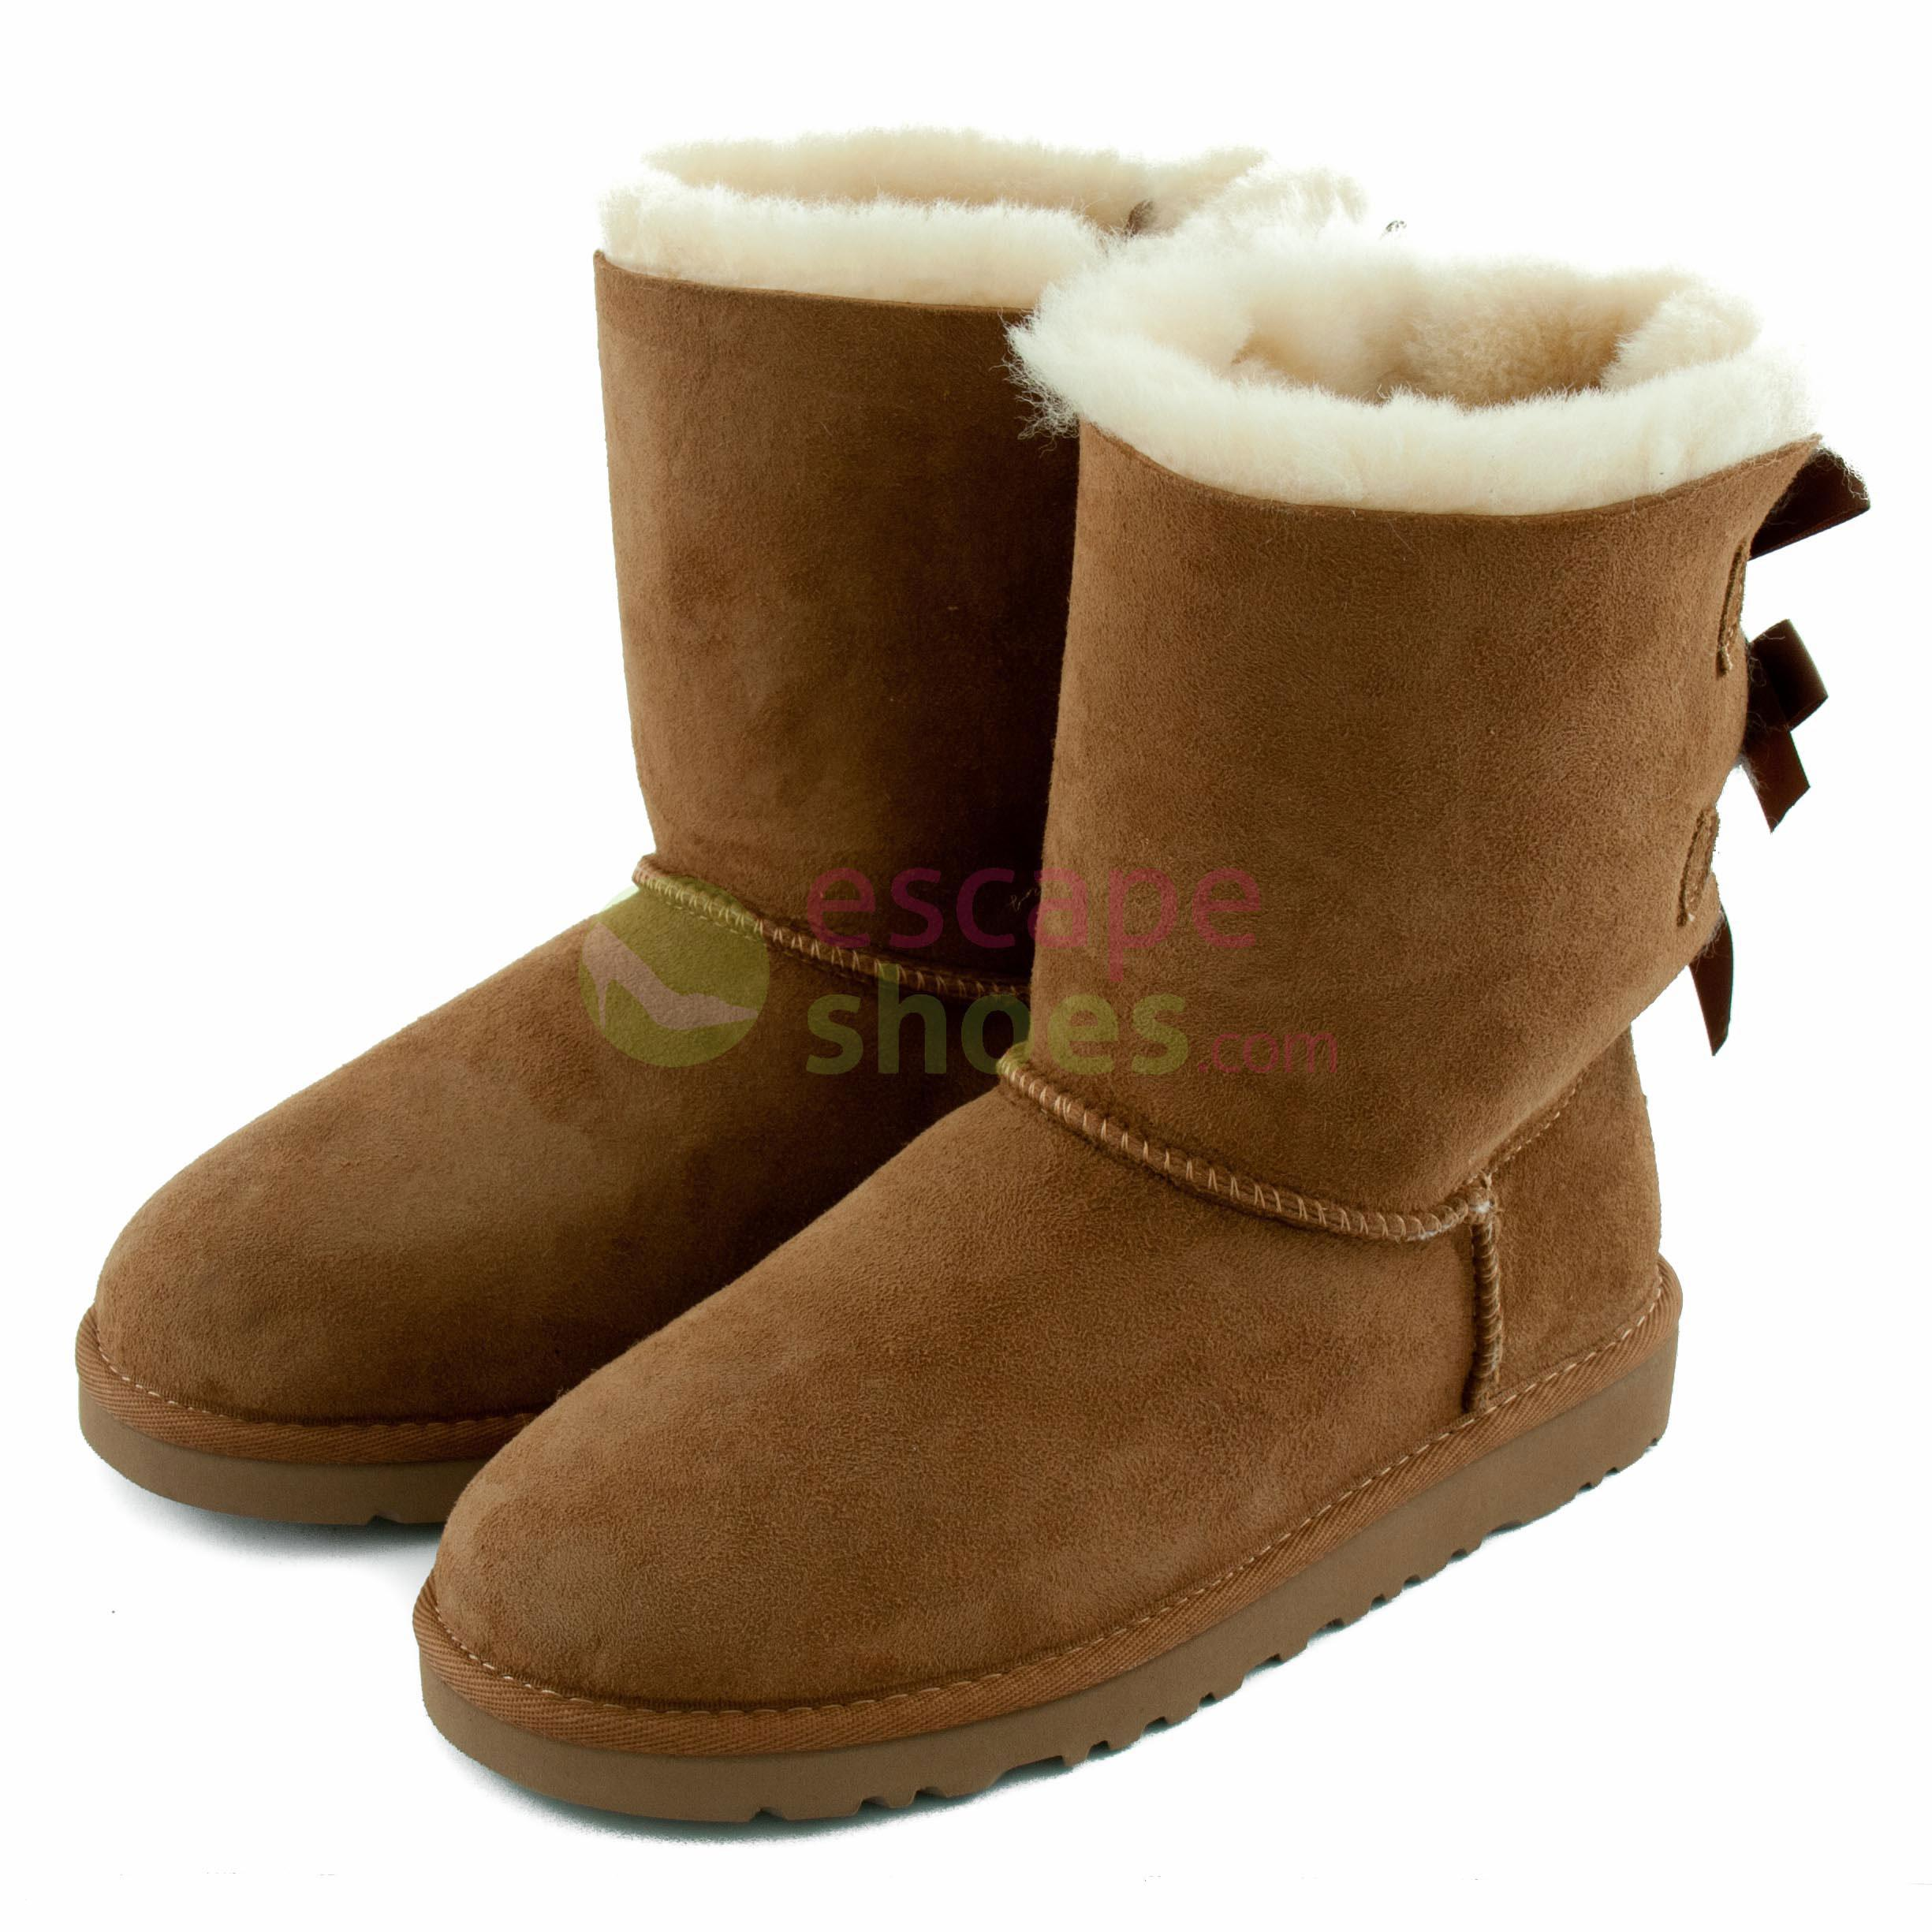 Ugg Boots Bailey Chestnut Bow Australia Che 1002954 8nP0OXwk